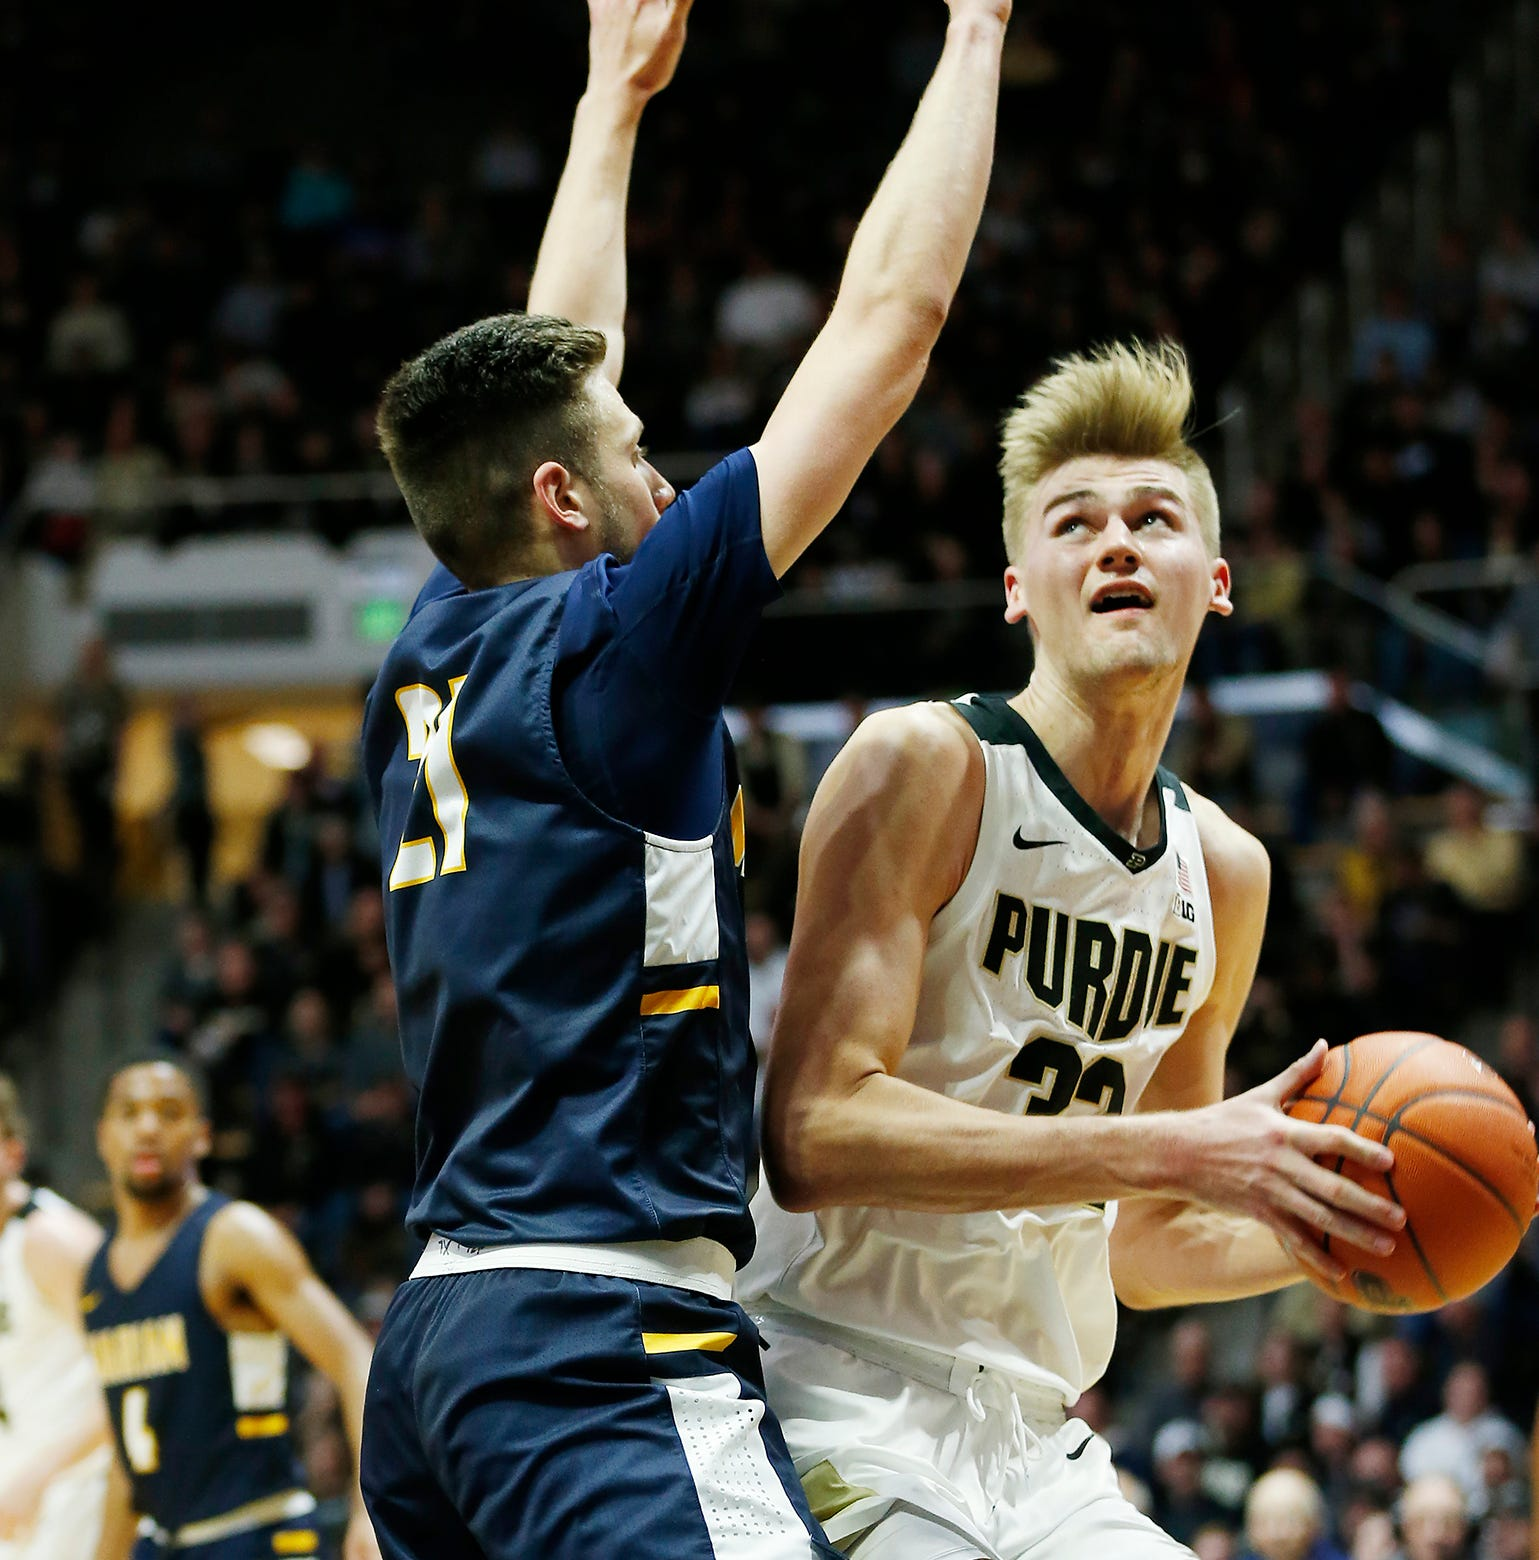 Scouting Purdue basketball vs. Notre Dame in the Crossroads Classic